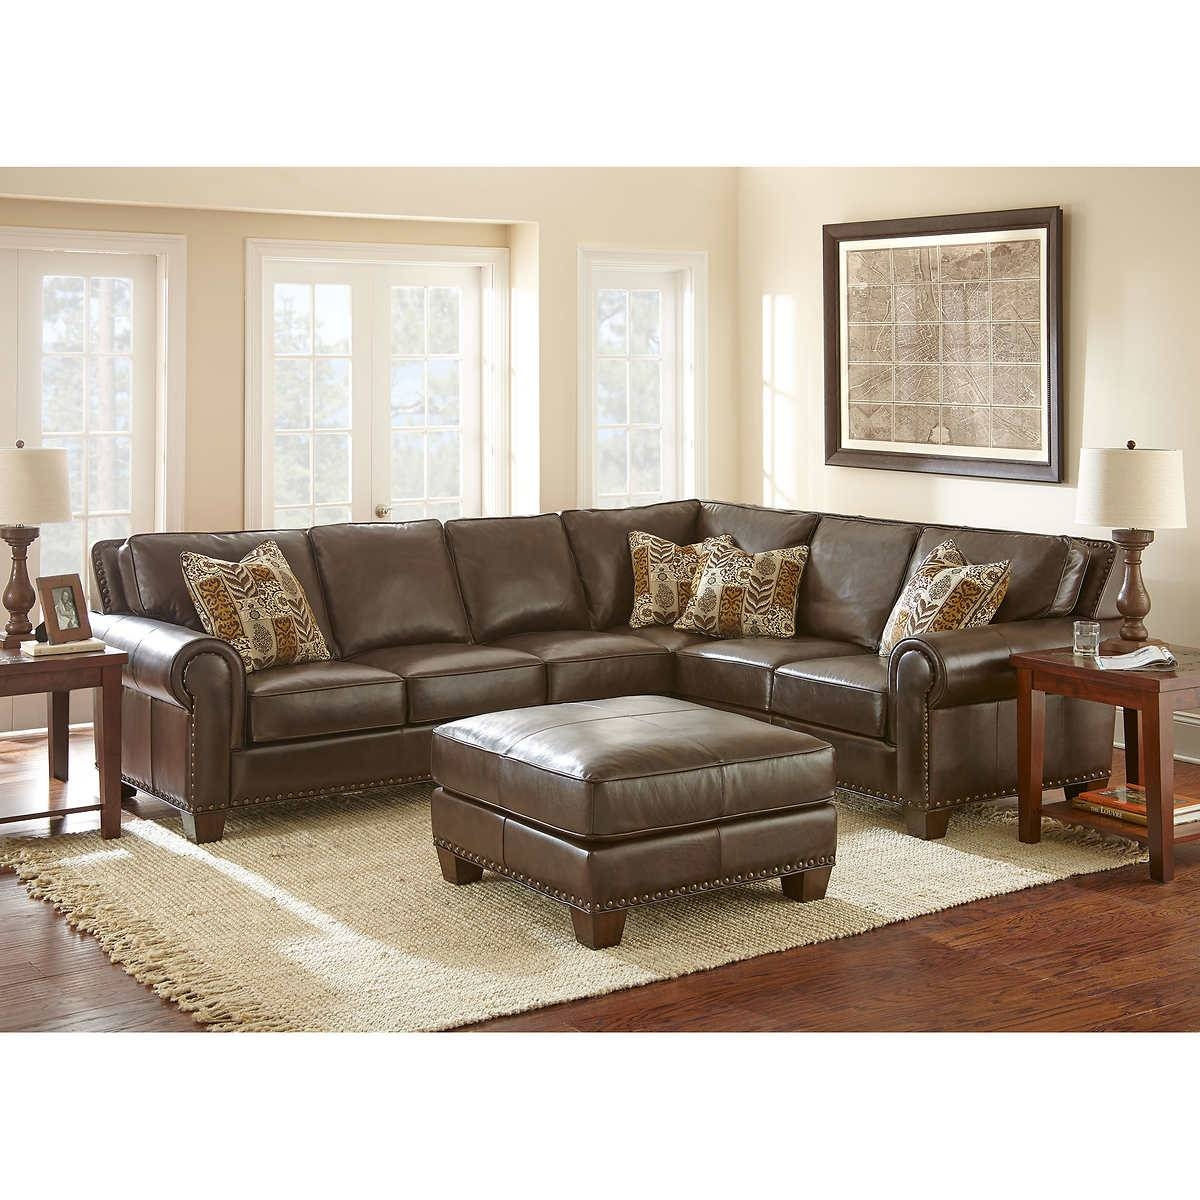 Furniture: Lazyboy Sectional With Cool Various Designs And Colors throughout 7 Seat Sectional Sofa (Image 9 of 30)